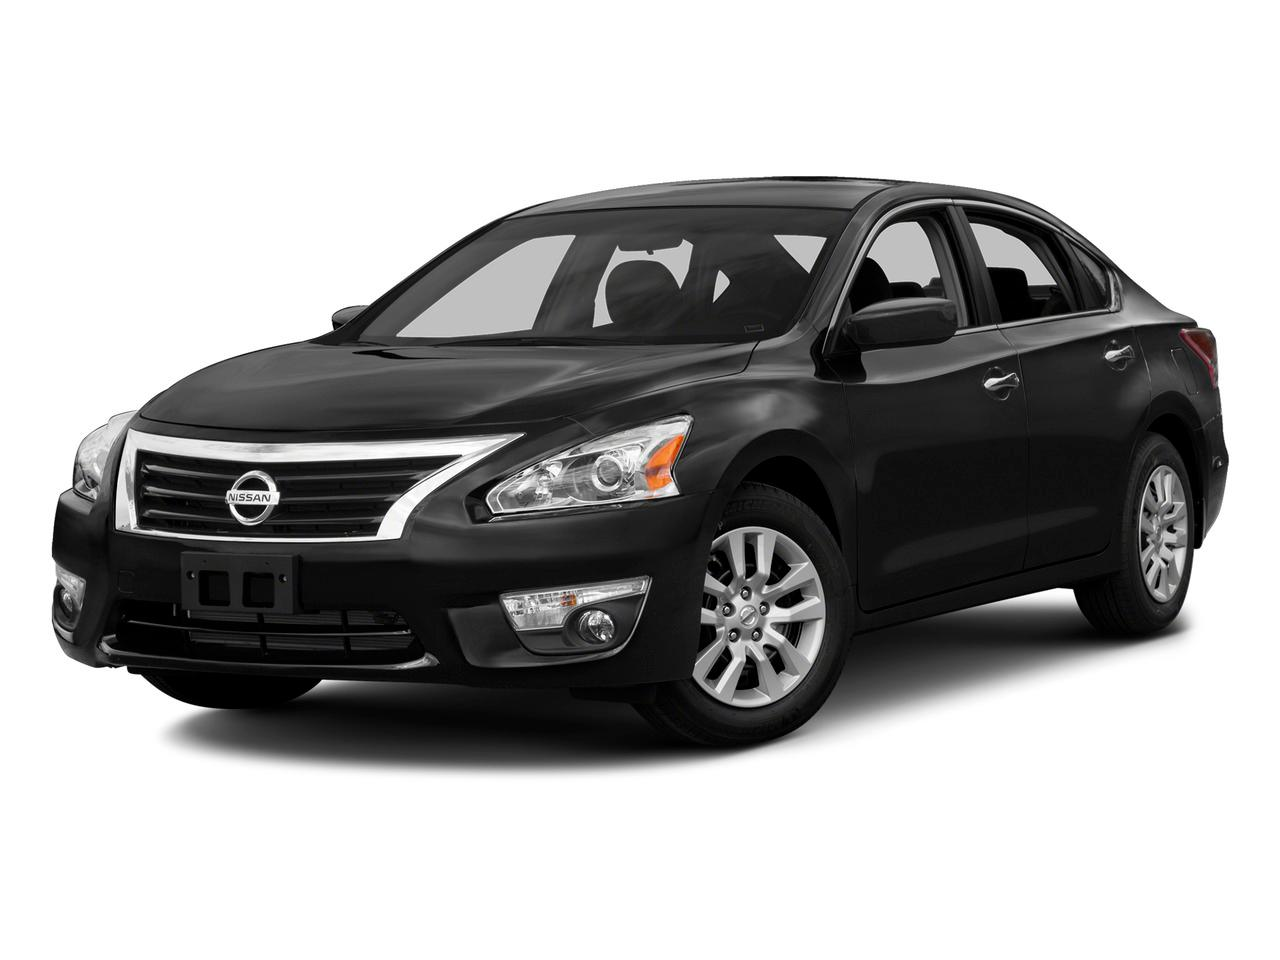 2015 Nissan Altima Vehicle Photo in Honolulu, HI 96819